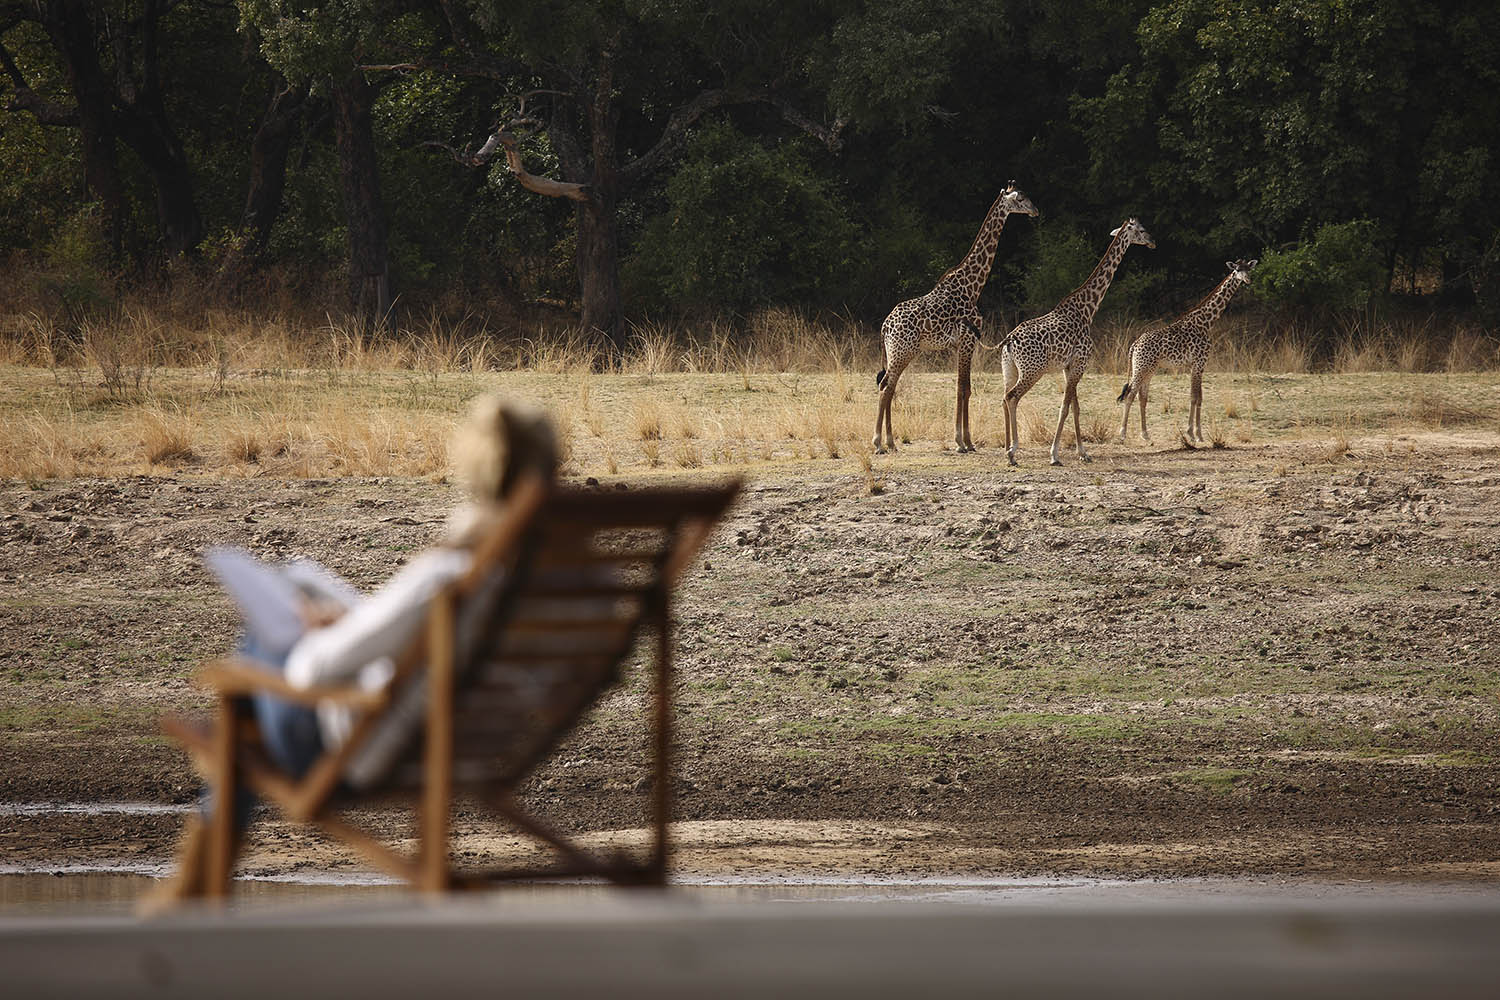 chinzombo-glamourous-lodge-zambia-in-style-tours-safari-packages-lodges-exploring-south-luangwa-national-park-giraffe-view-deck-villa